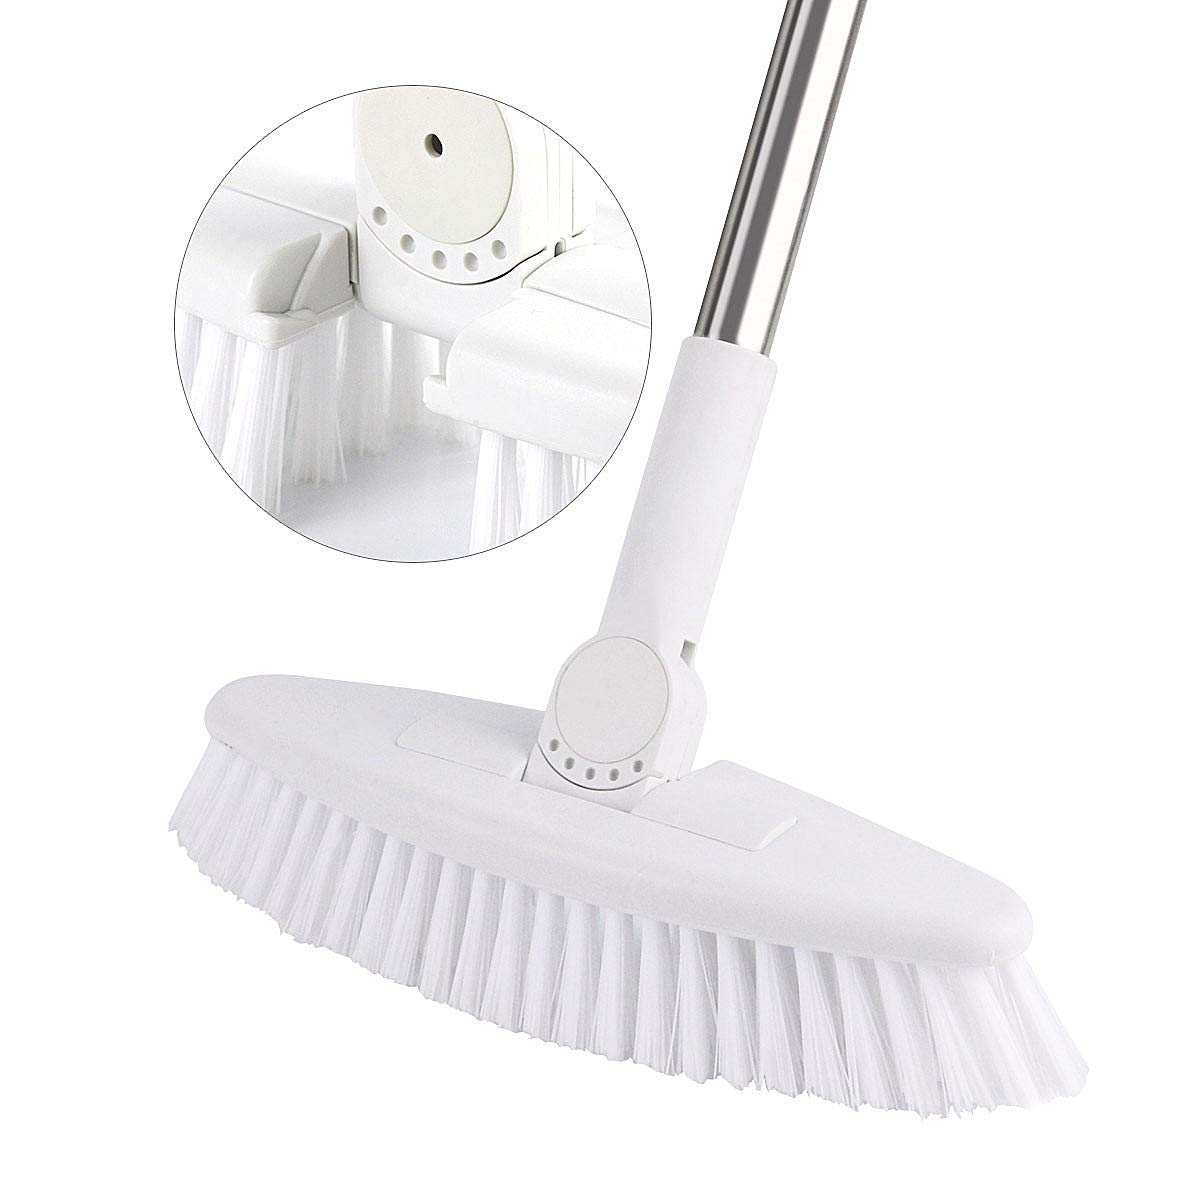 Floor Scrub Brush with Adjustable Long Handle-52'', GeeRo Swivelled Multi-Angle Stiff Bristle Grout Brush Scrubber for Cleaning Tub & Tile, Bathroom, Floor, Wall and Kitchen